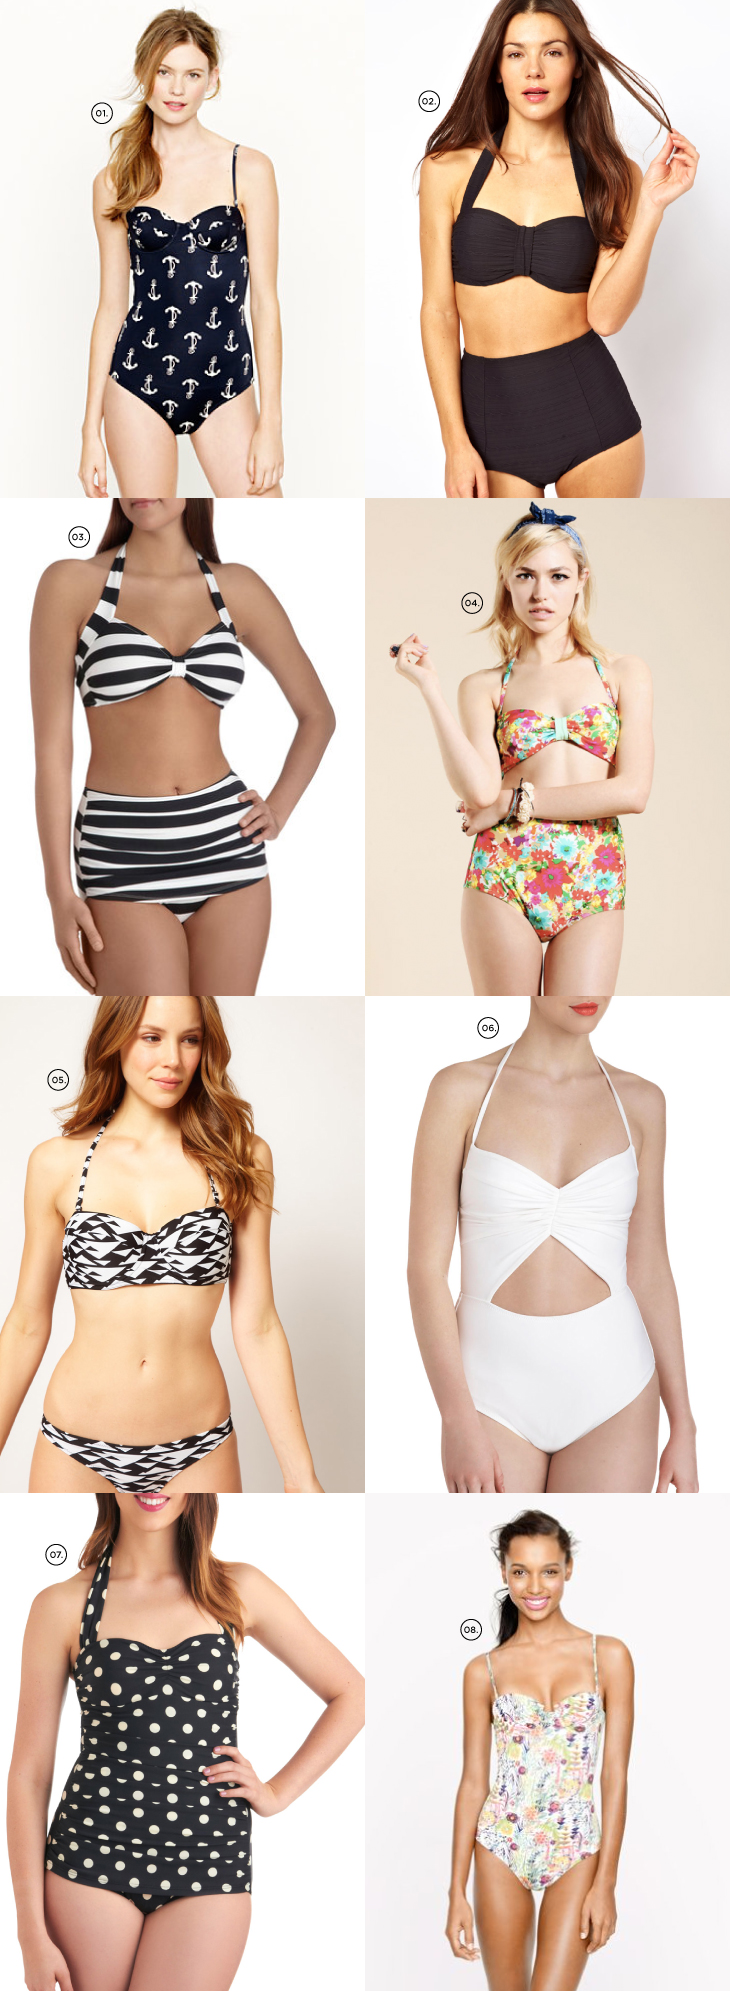 3b98815a10821 Let s Talk About Swimsuits - A Beautiful Mess